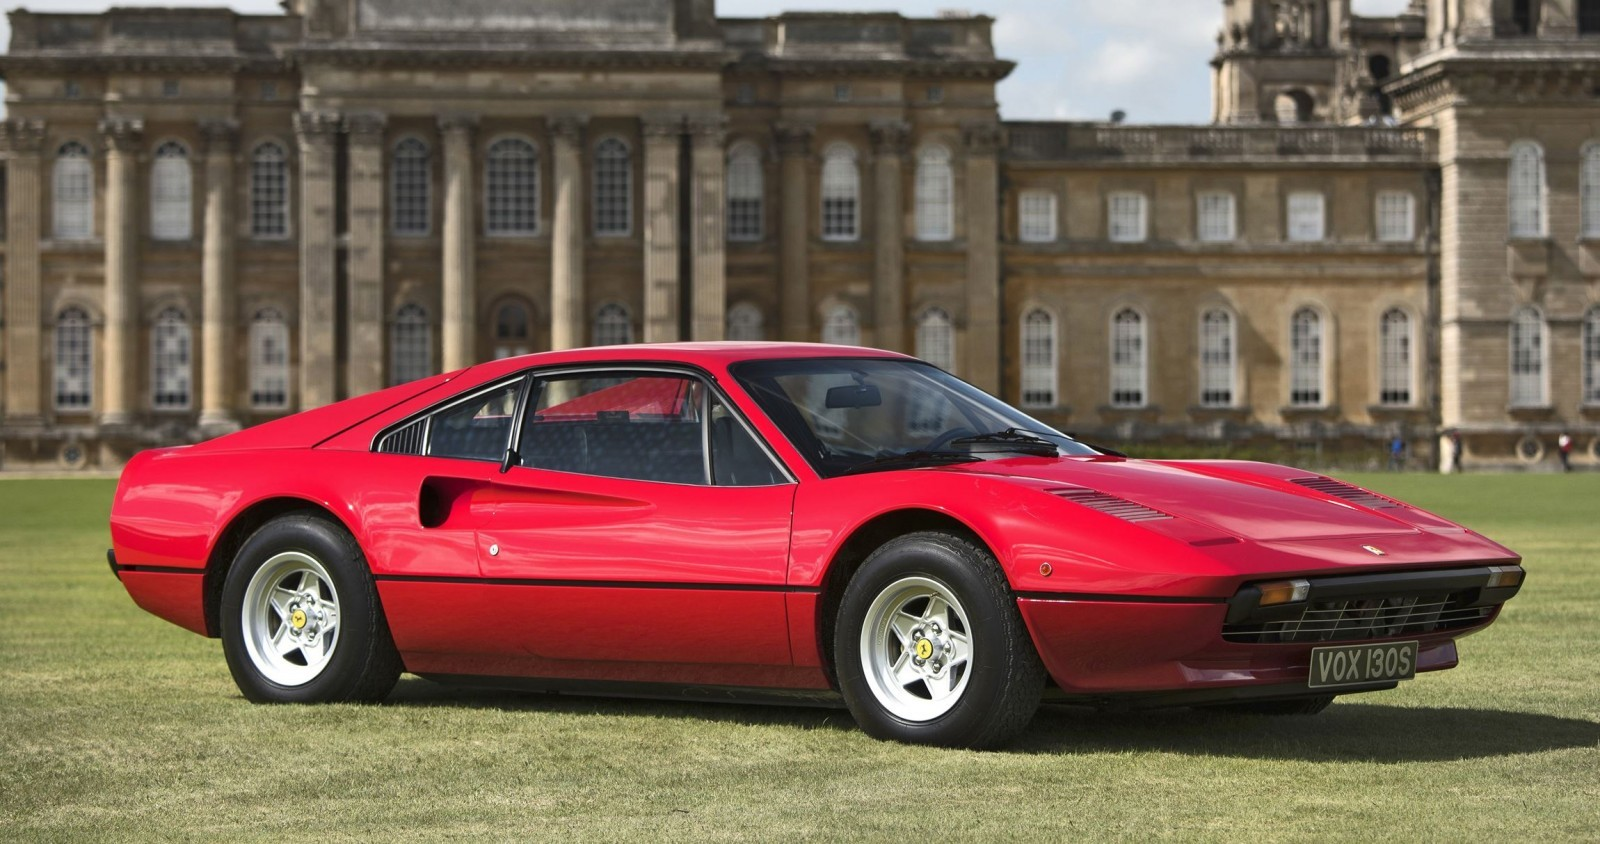 2015 Salon Prive Preview 79